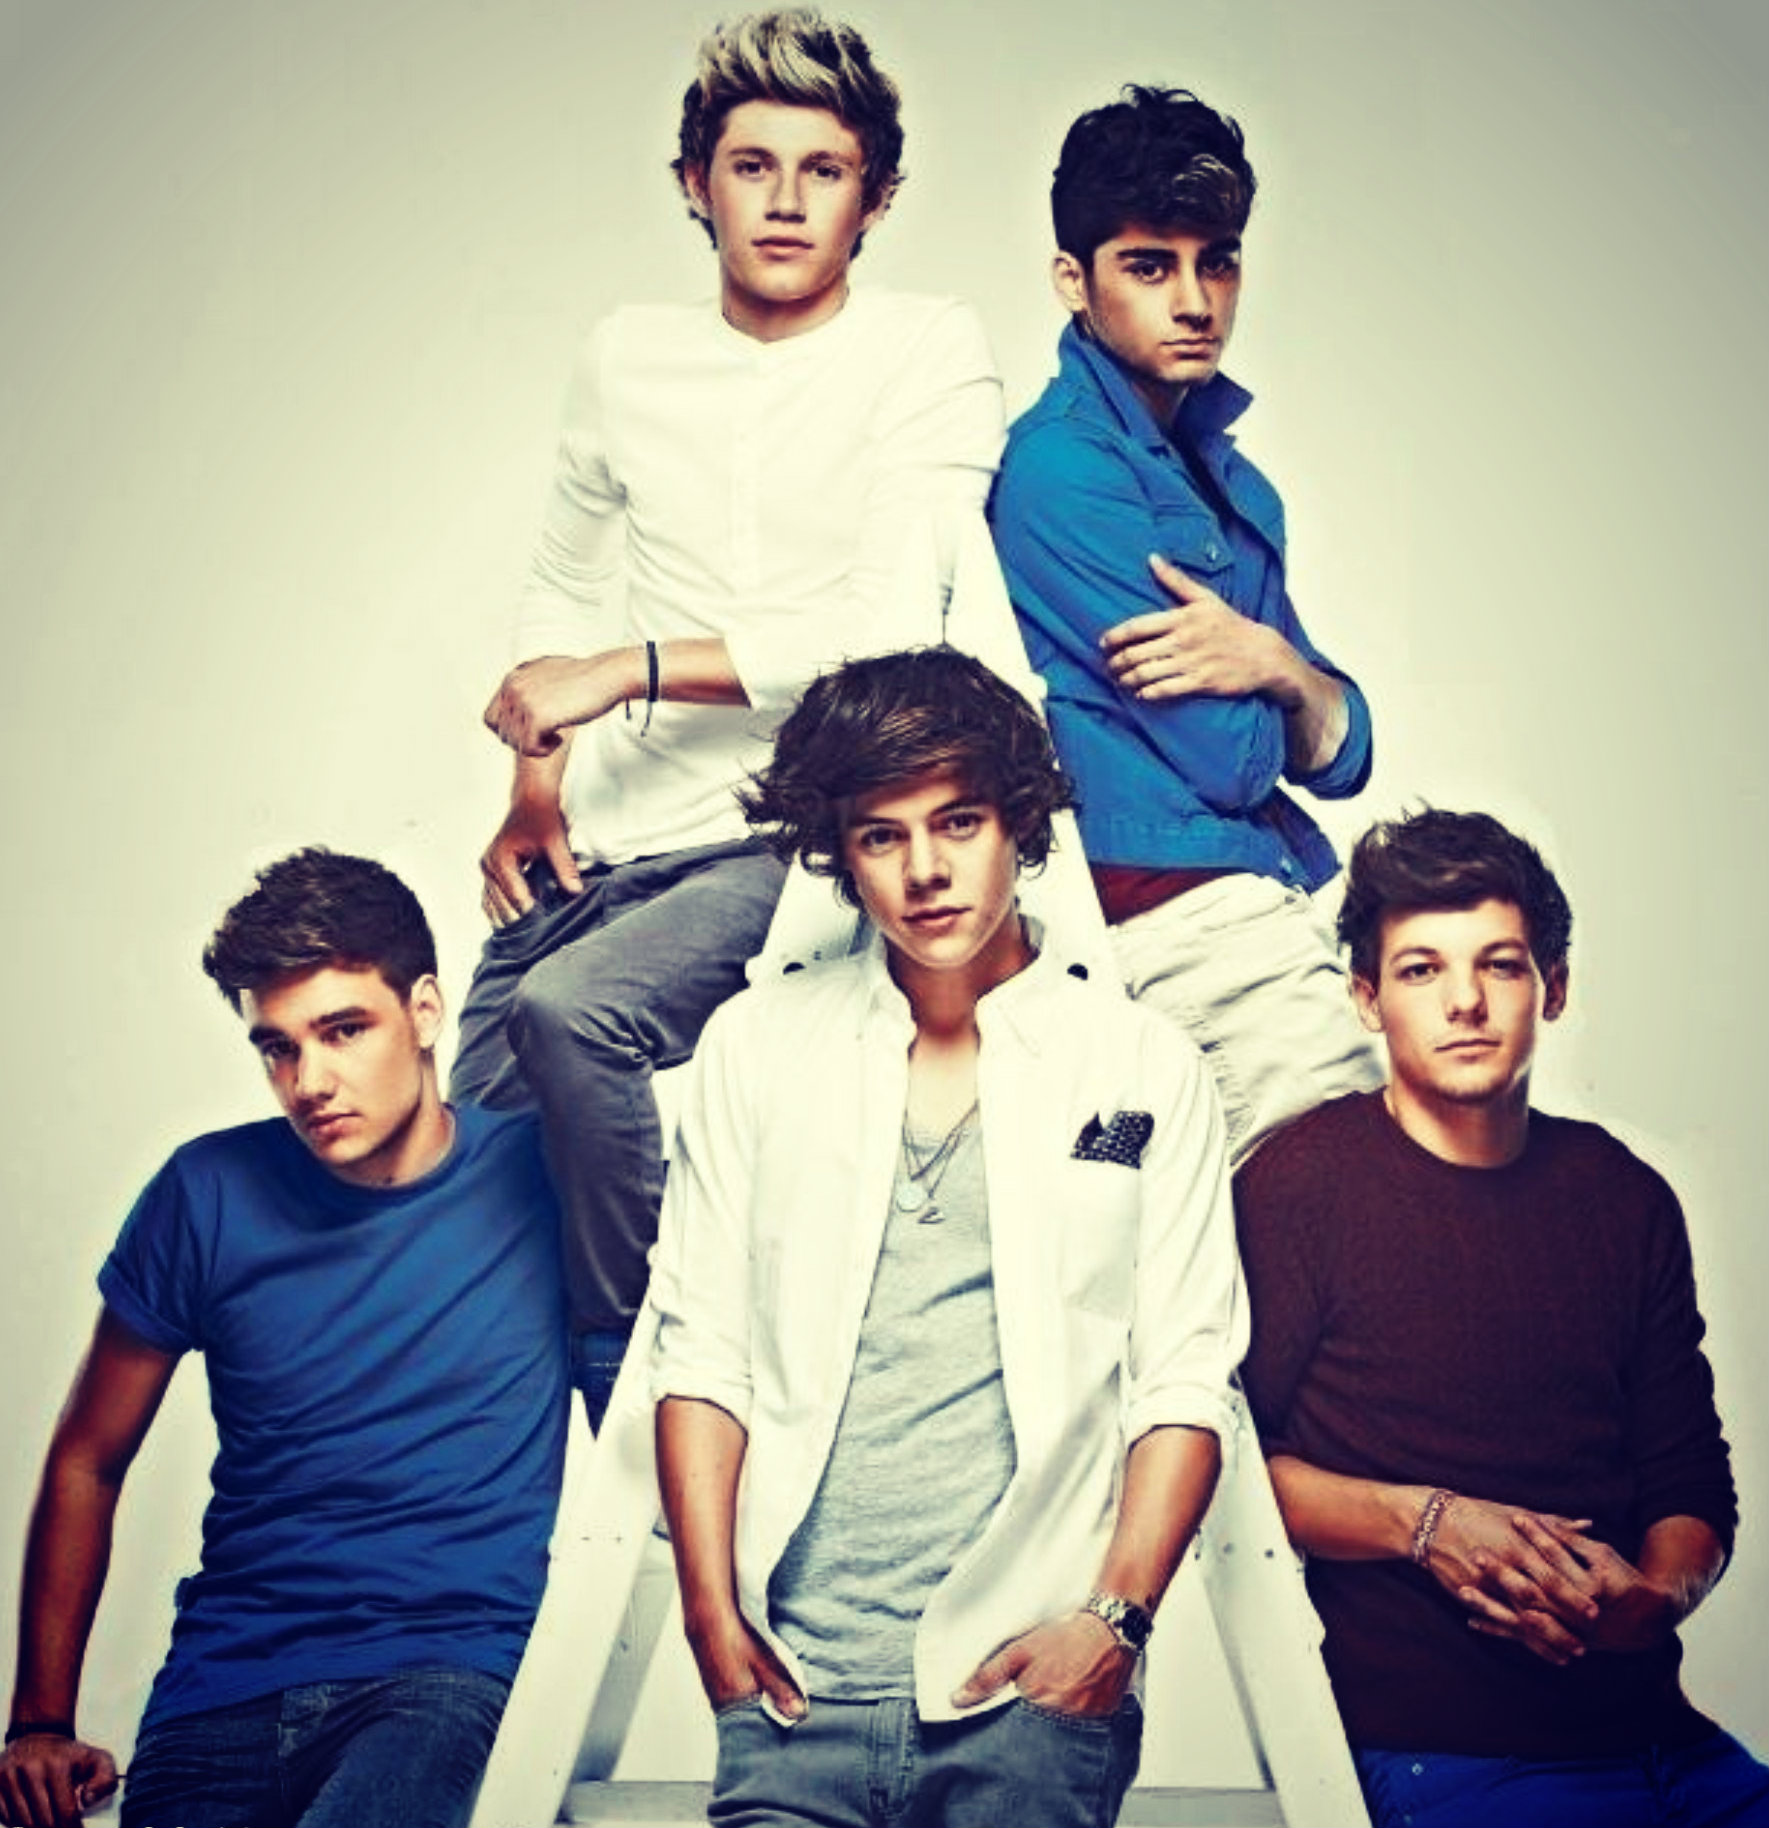 download one direction cool wallpapers gallery